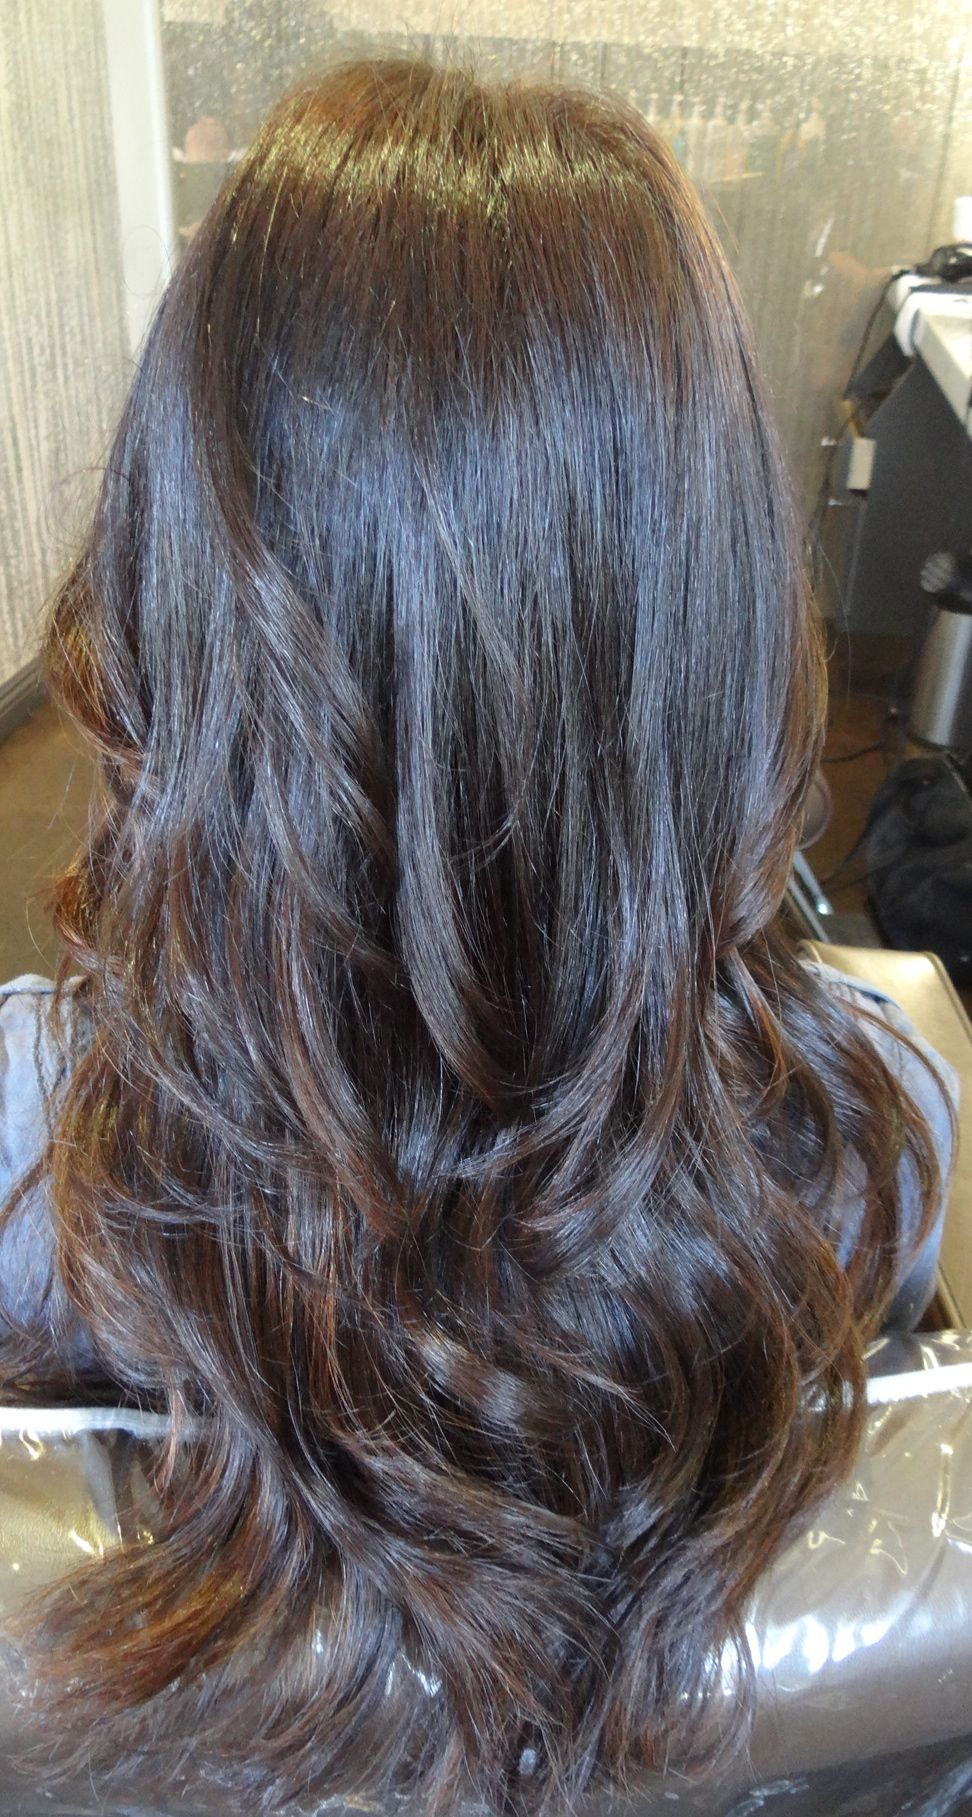 Long Layered Hair Blow Dry Using Large Round Brush To